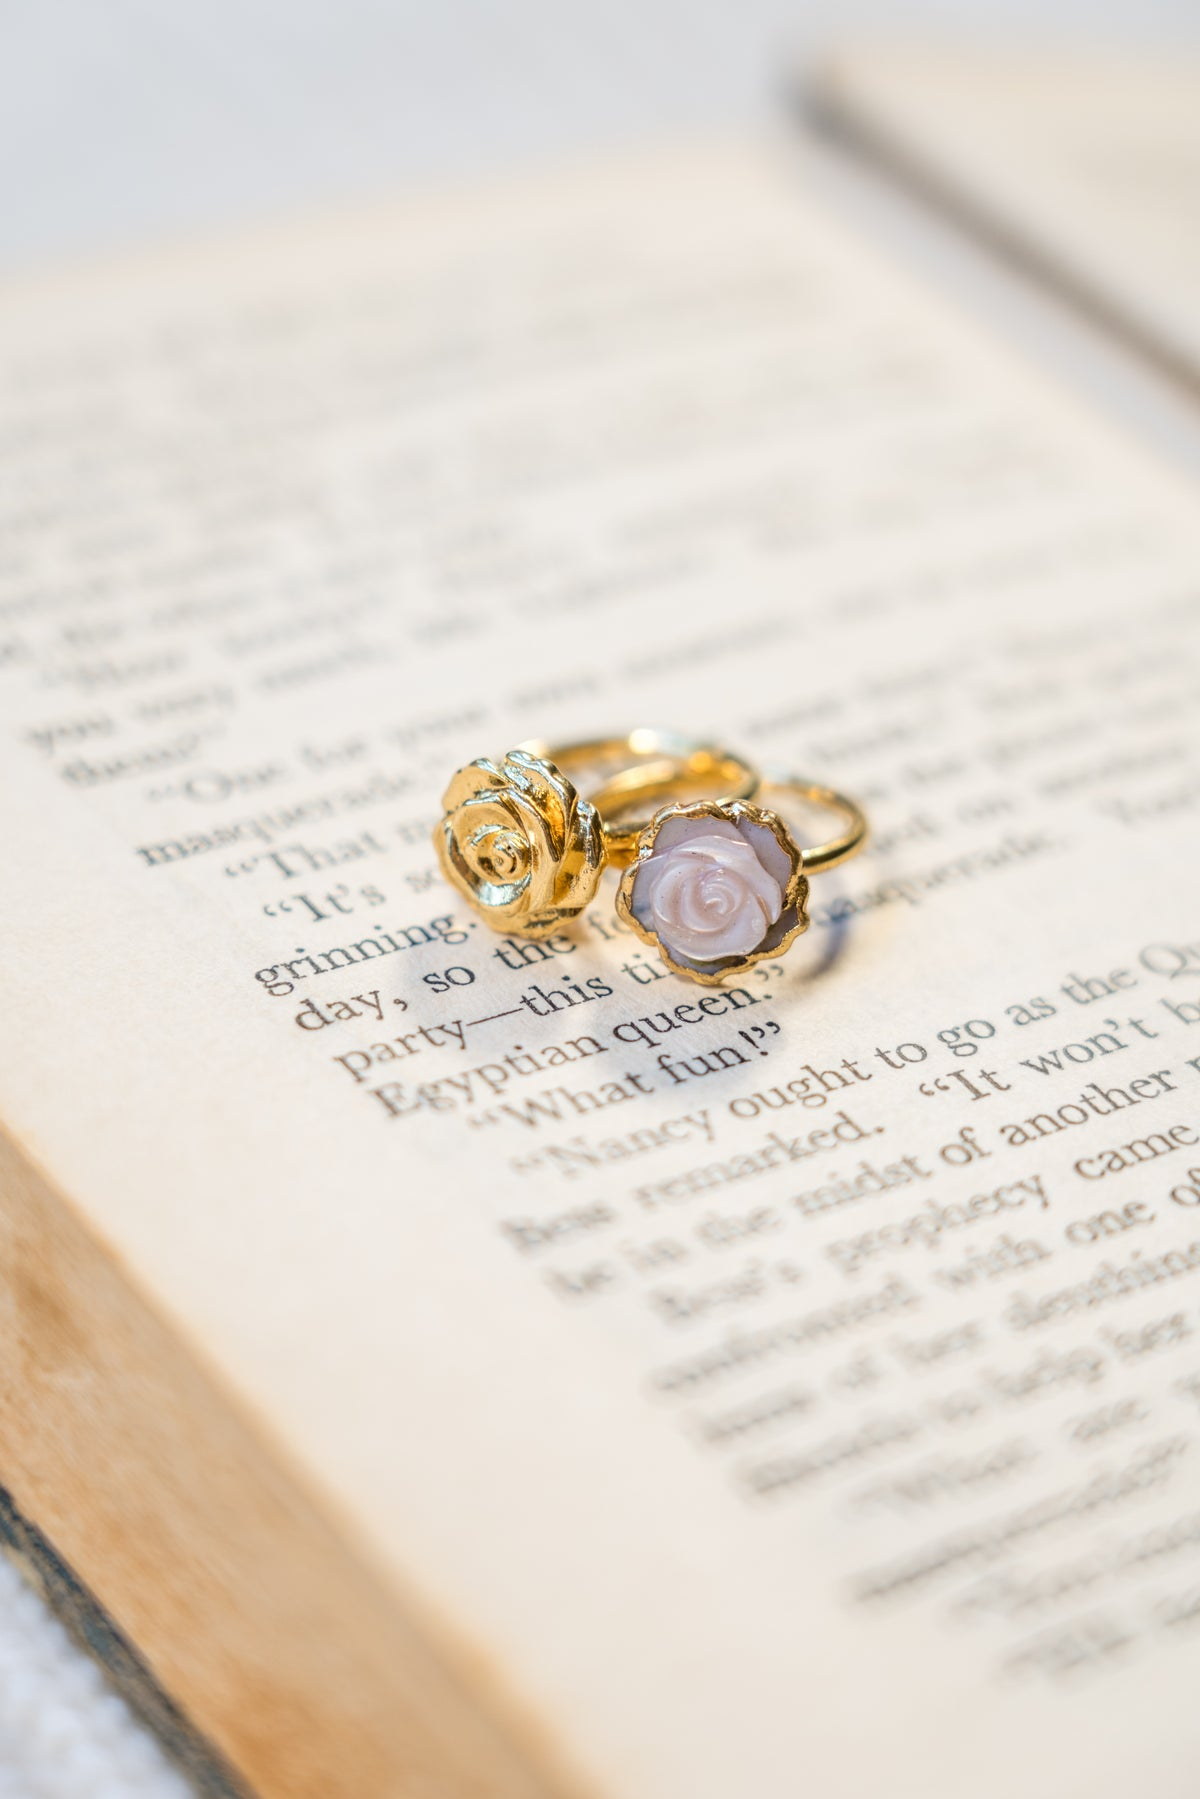 janna Conner pink mother of pearl and gold plated rosette rings on book